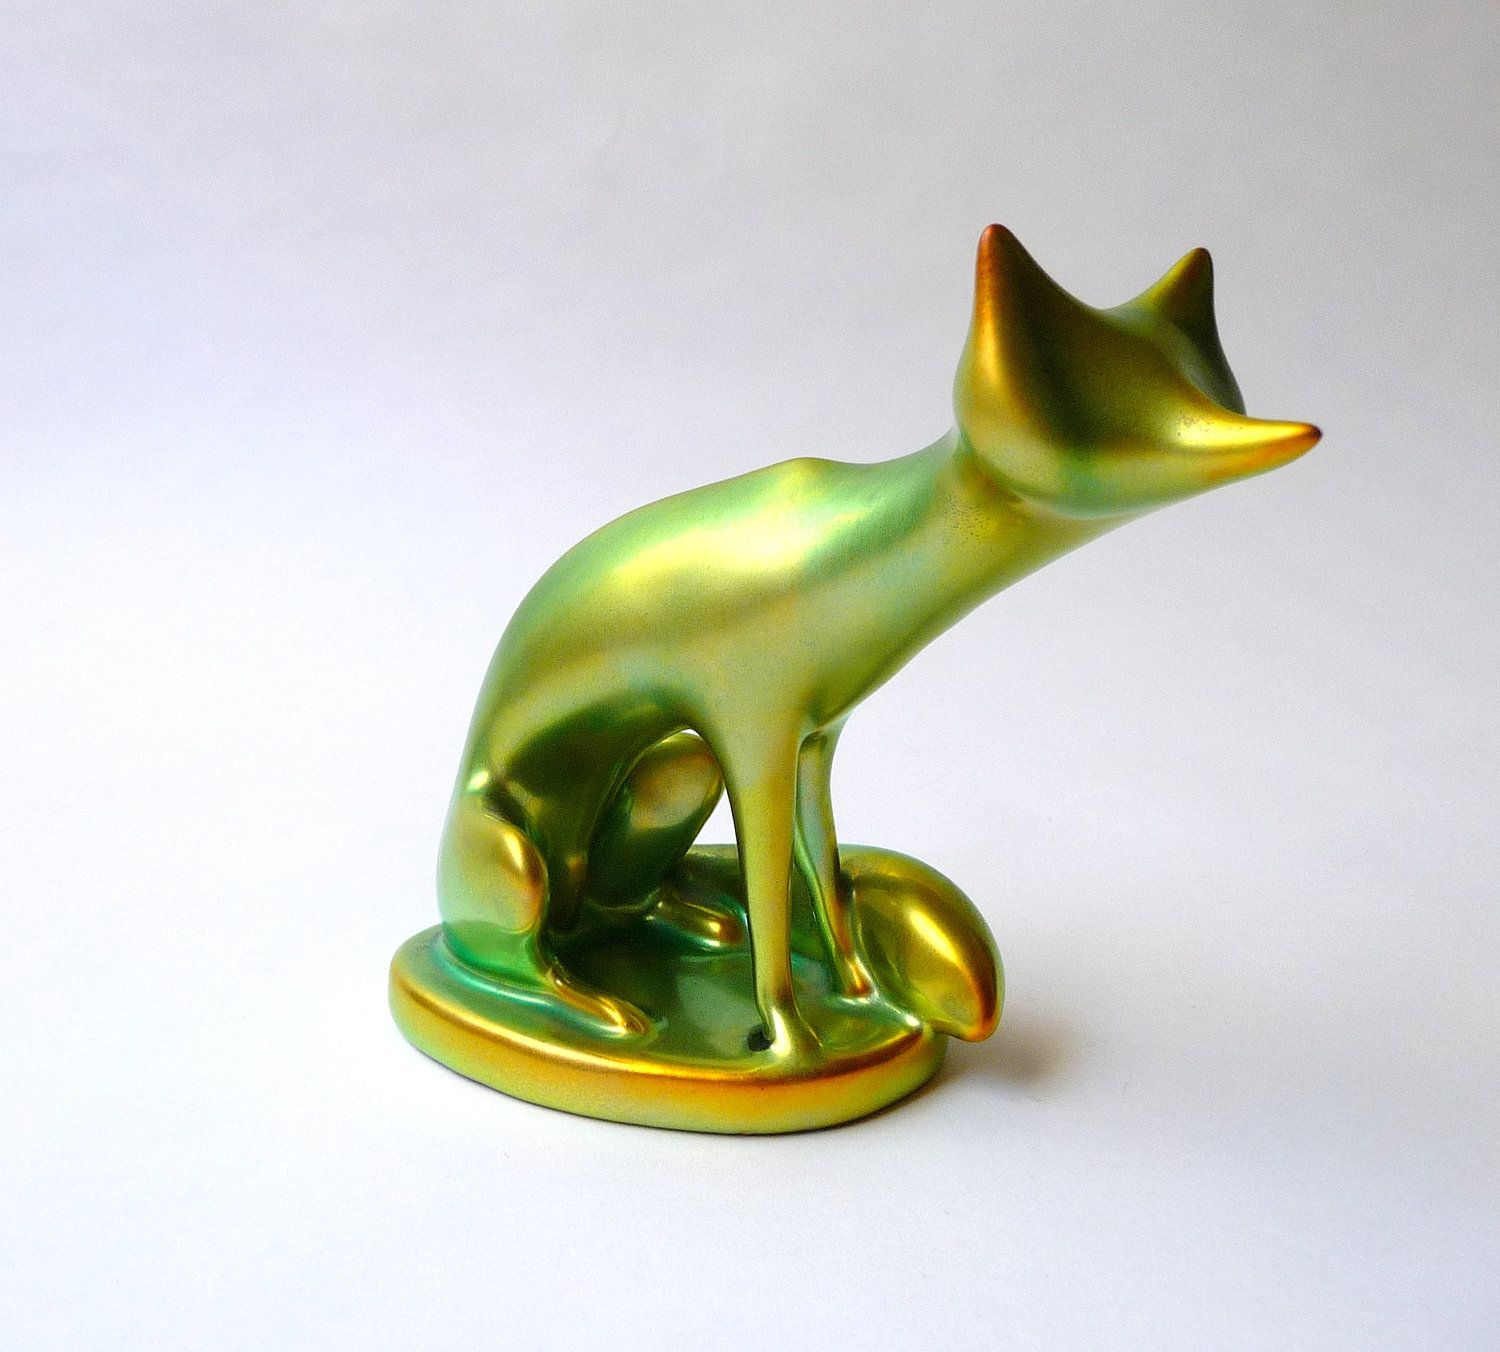 art deco porcelain fox figurine by zsolnay with iridescent. Black Bedroom Furniture Sets. Home Design Ideas